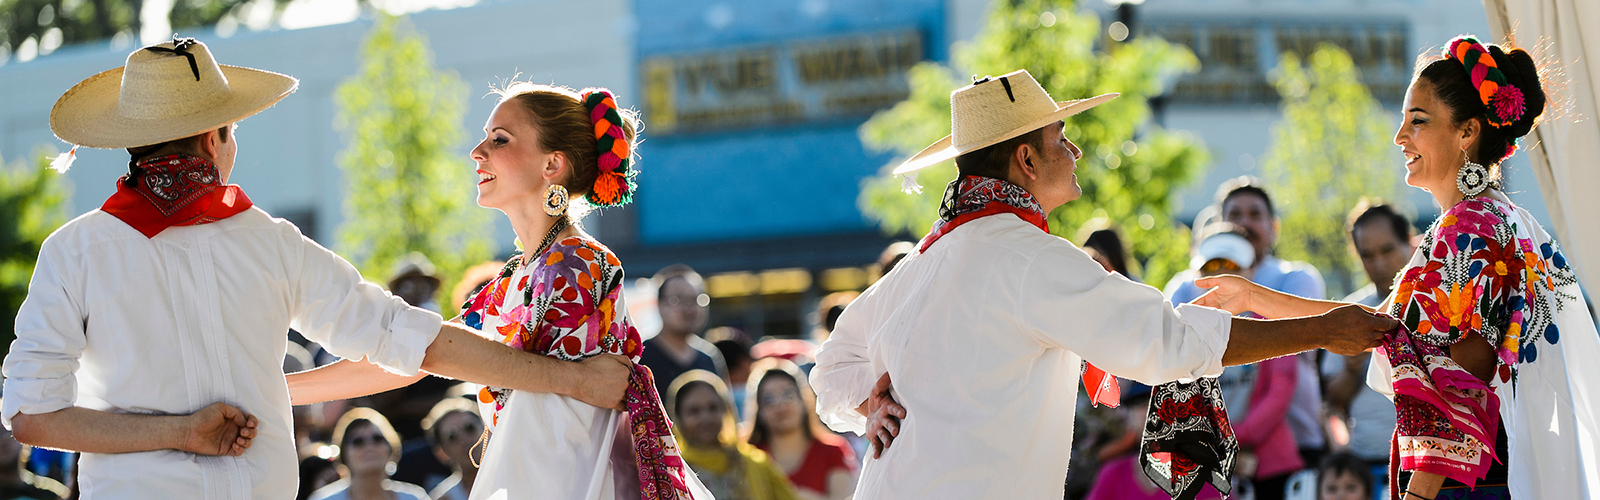 Members of DanzTrad perform a traditional Mexican folklore dance